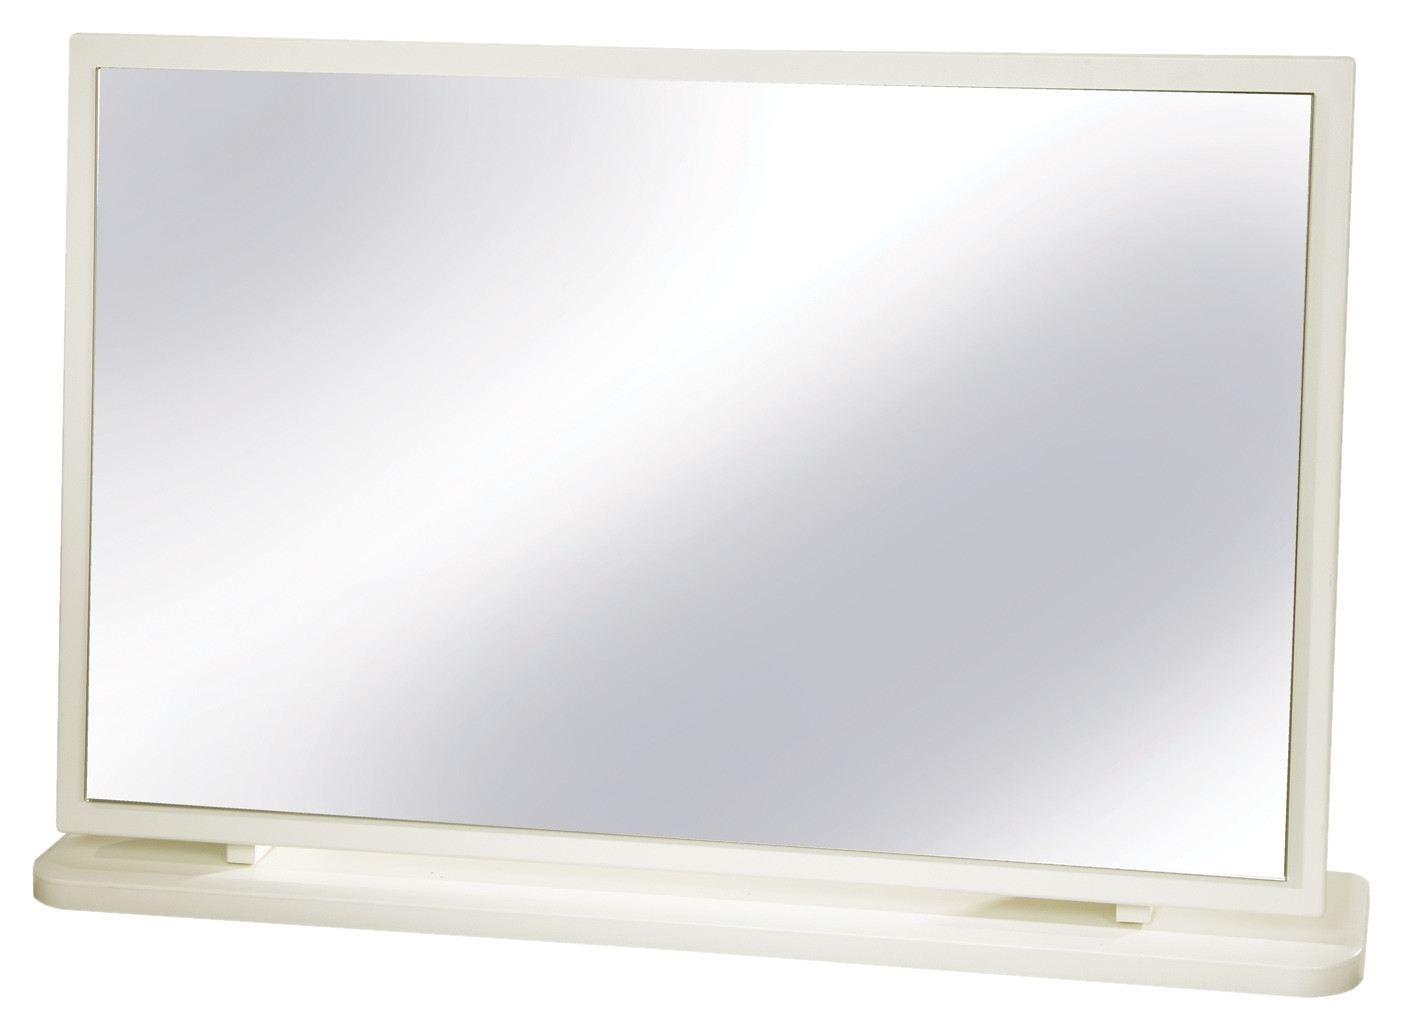 Avalon Cream Large Dressing Table Mirror Default Store View With Regard To Large Cream Mirror (Image 1 of 15)